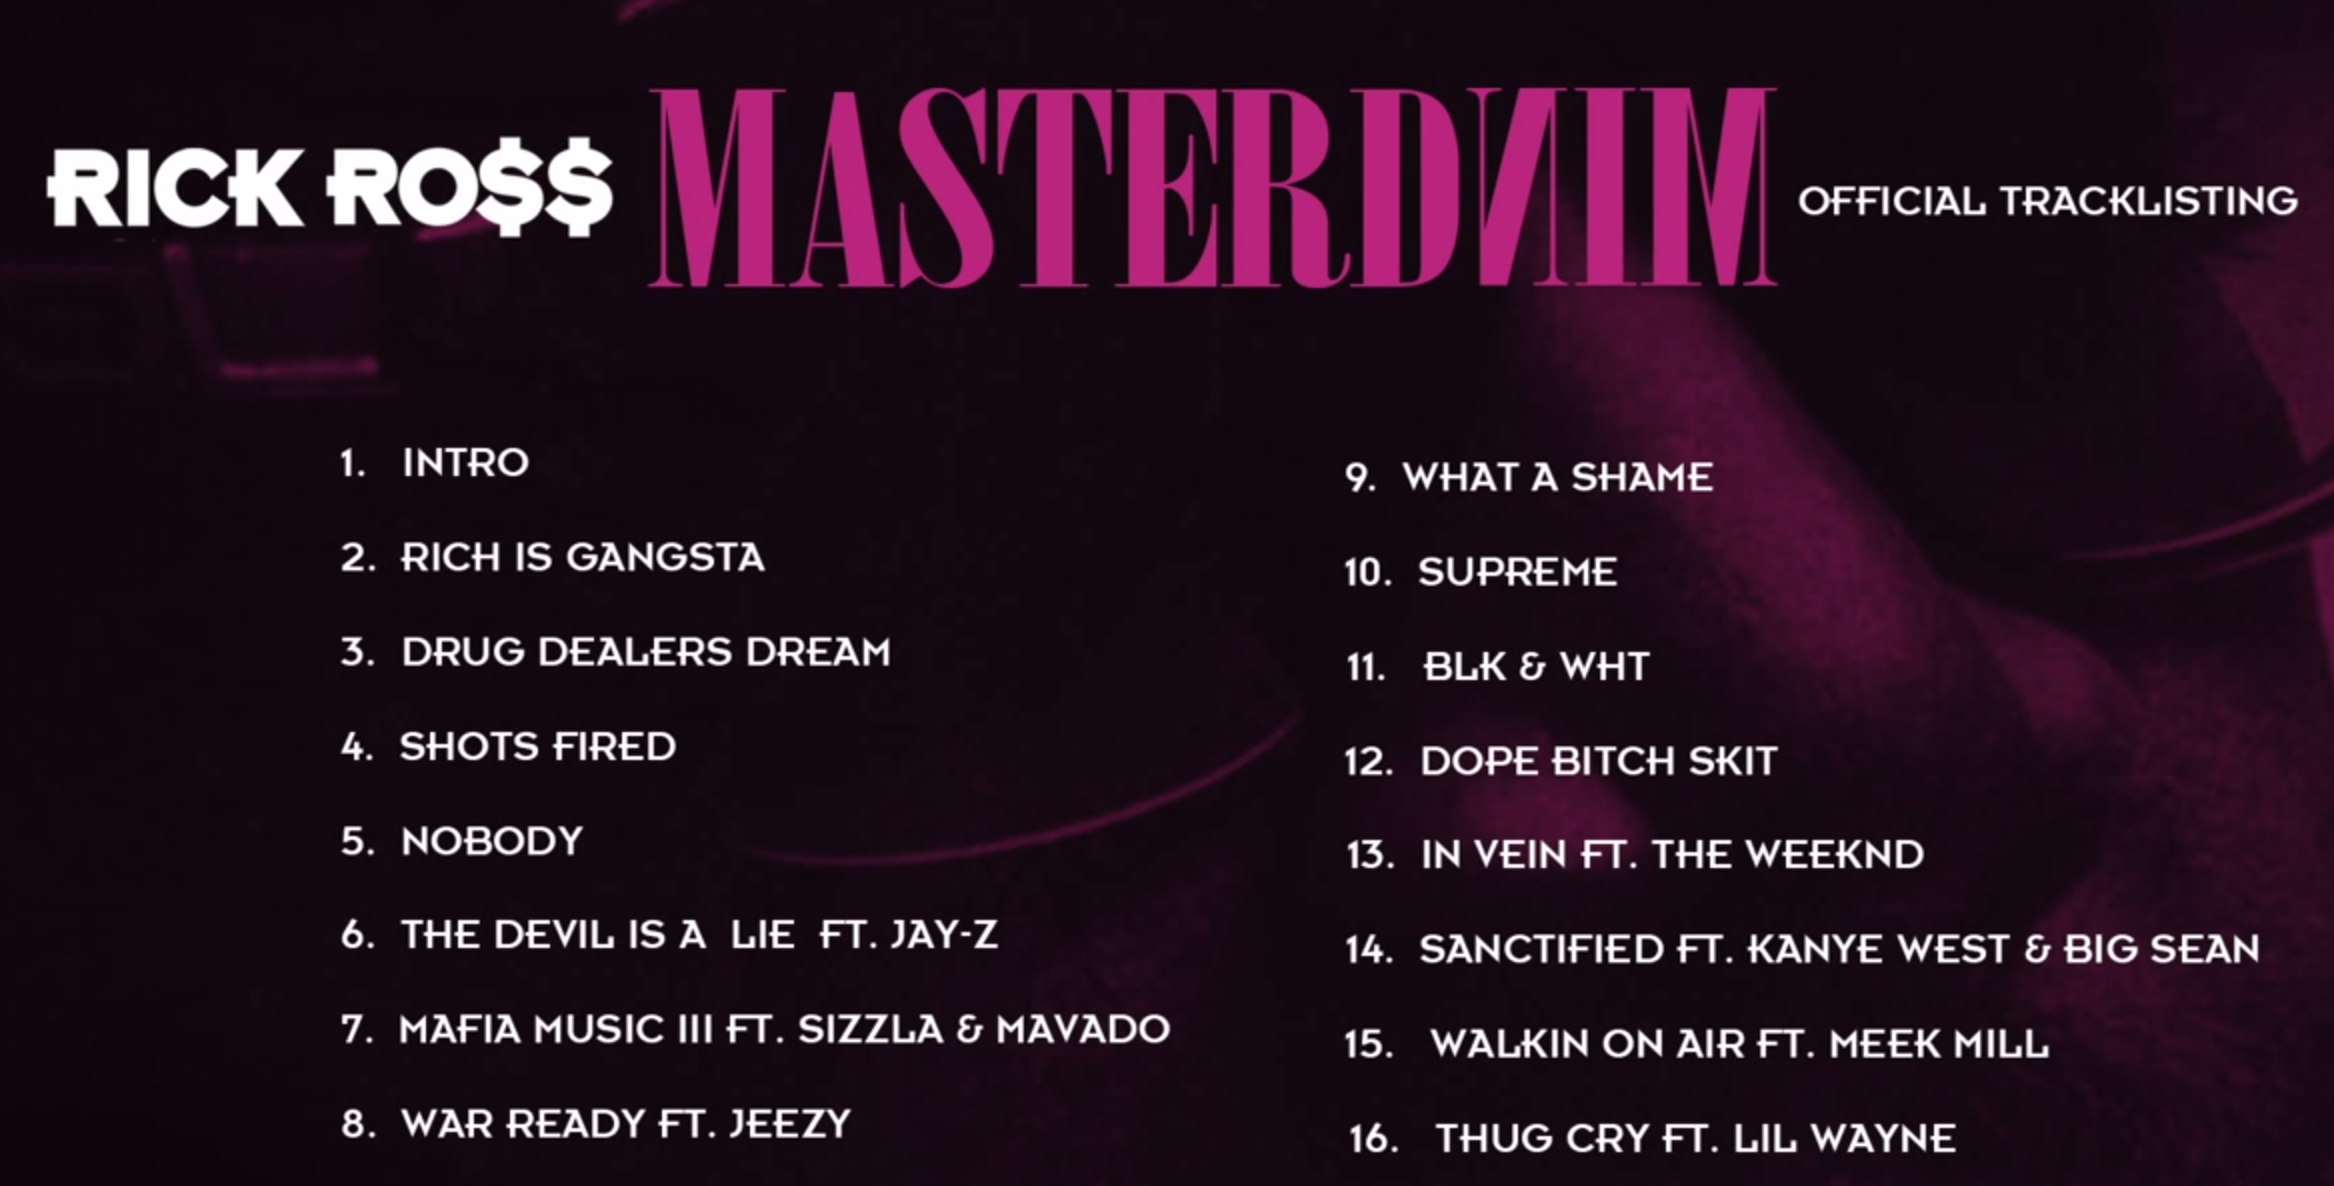 Rick Ross Mastermind track listing